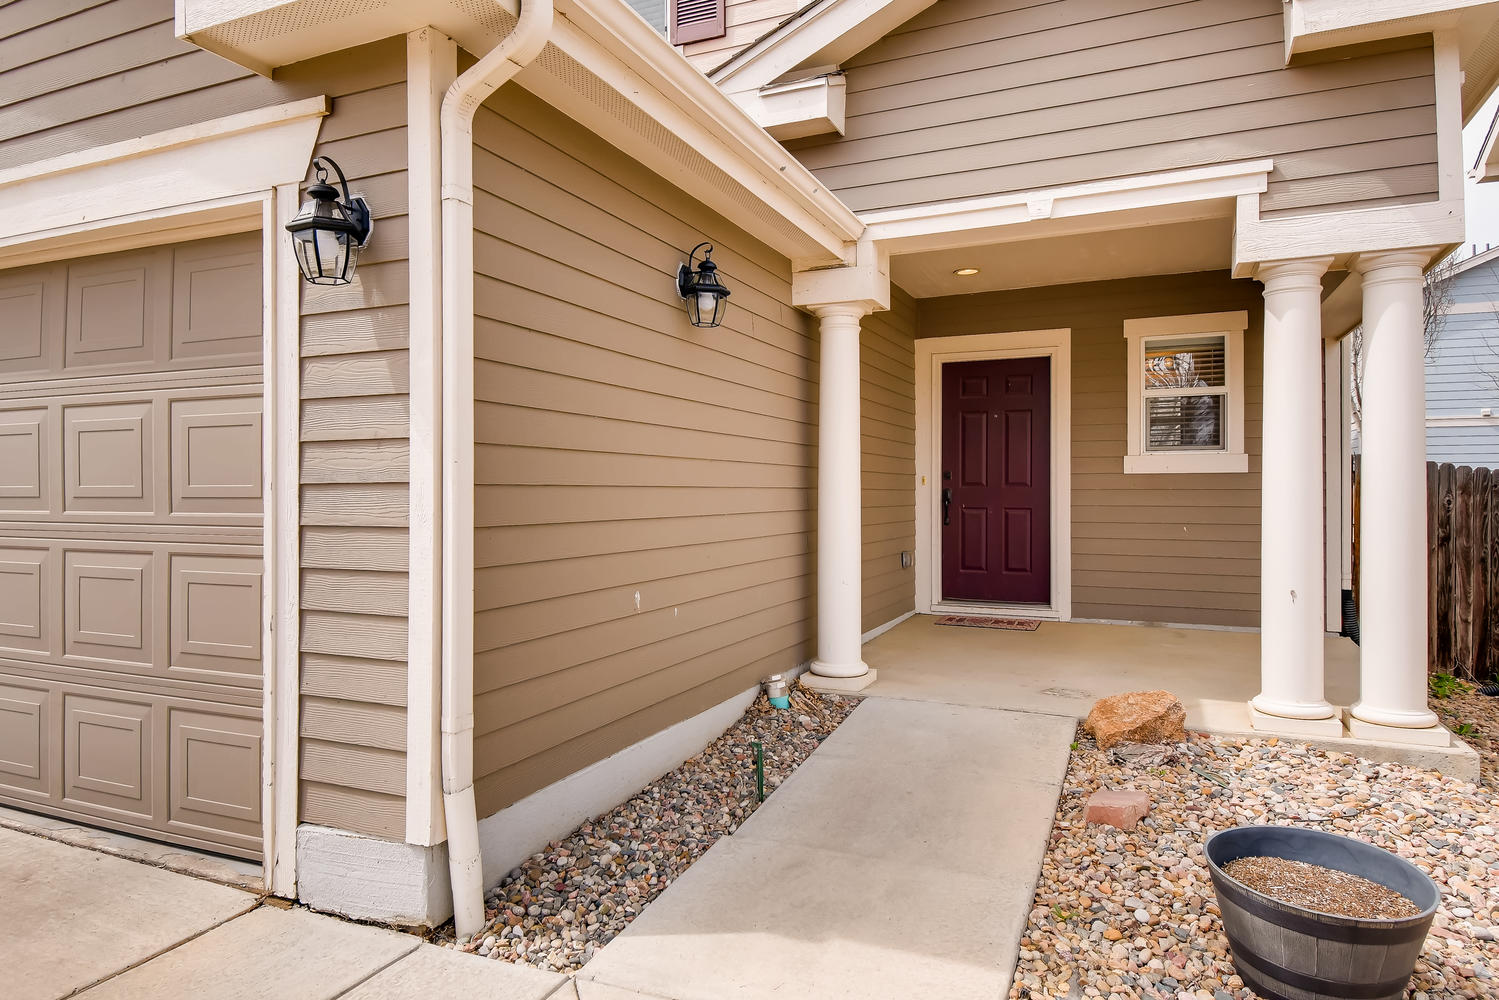 REAL ESTATE LISTING: 10595 Forester Pl Longmont CO Front Porch and Entry